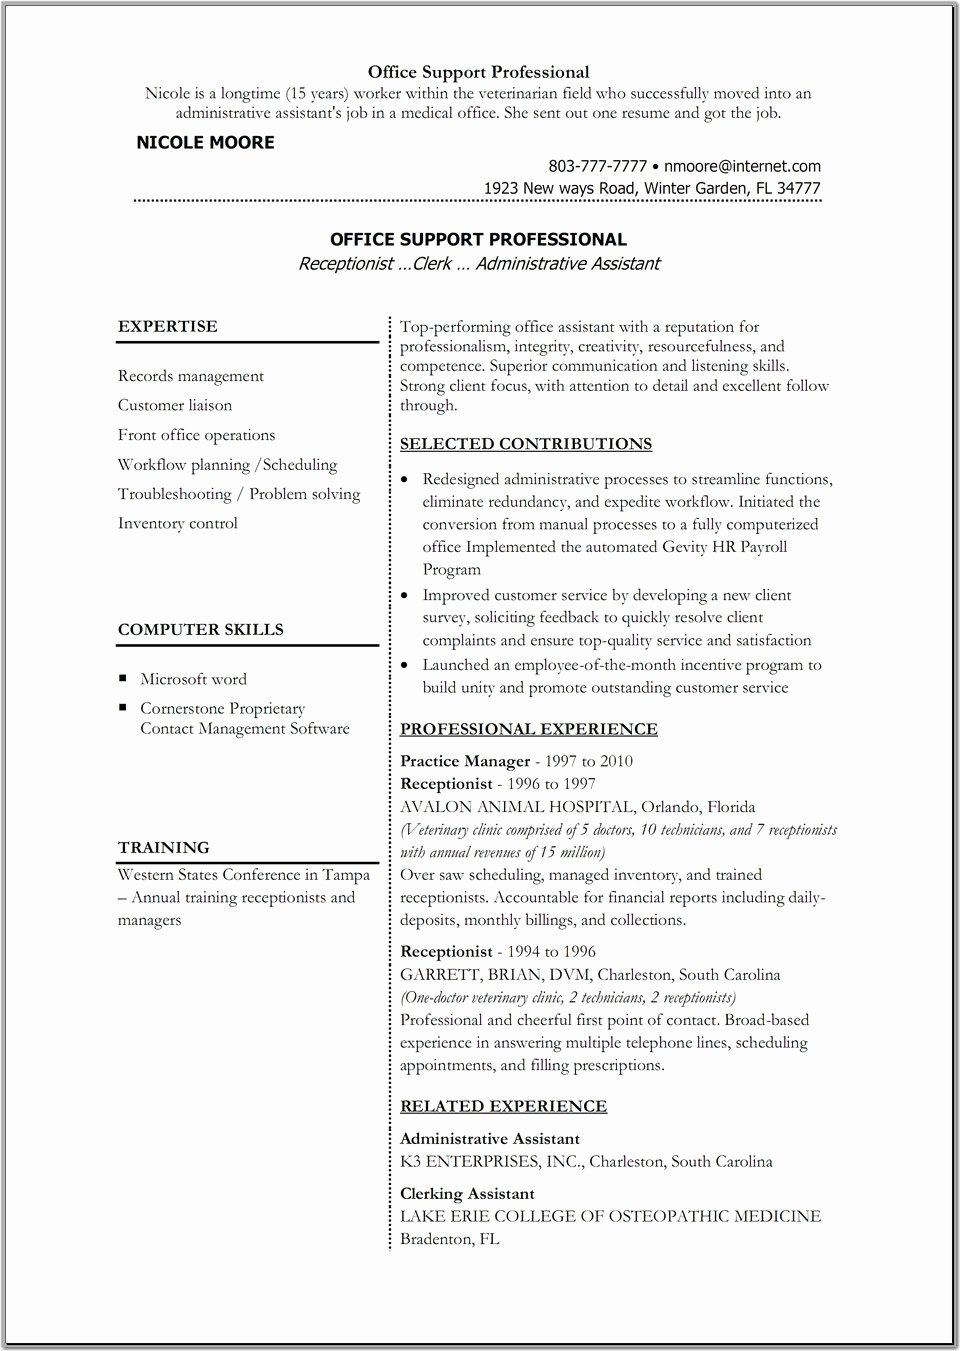 Resume Templates Microsoft Word 2007 for Mac